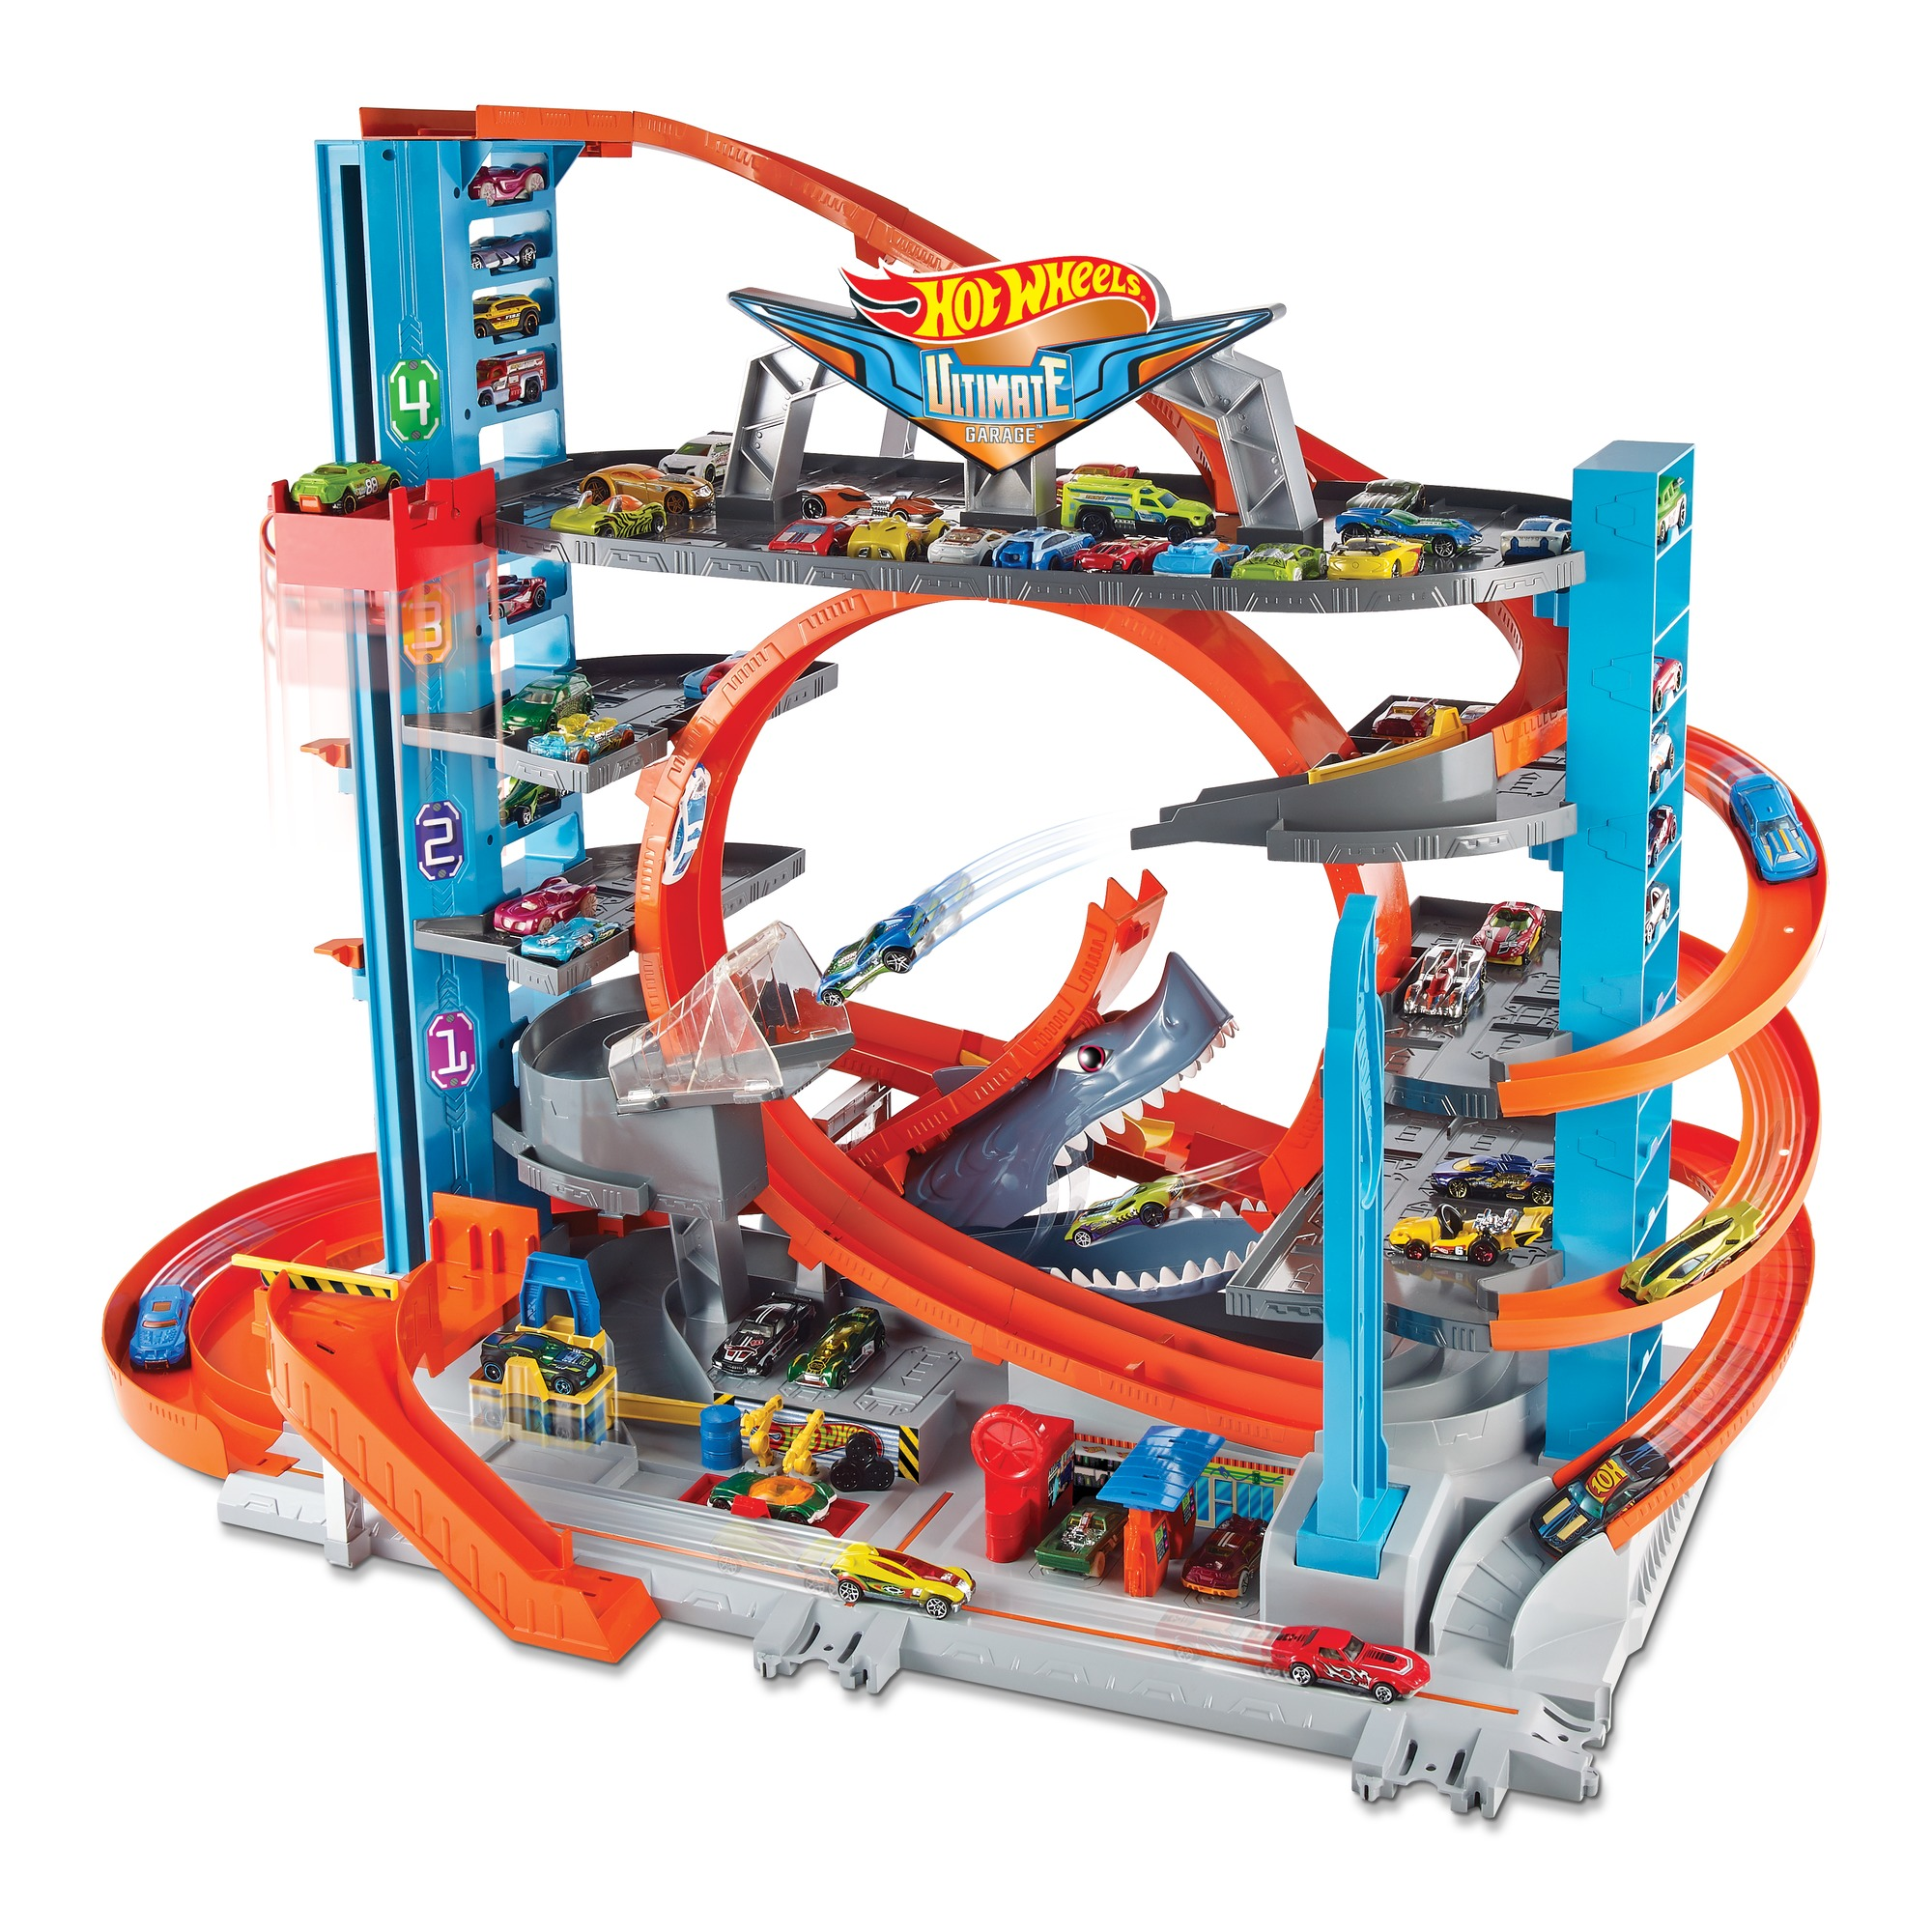 Hot Wheels Ultimate Garage Tower Shark Loop Racetrack Set with Two Vehicles by Mattel